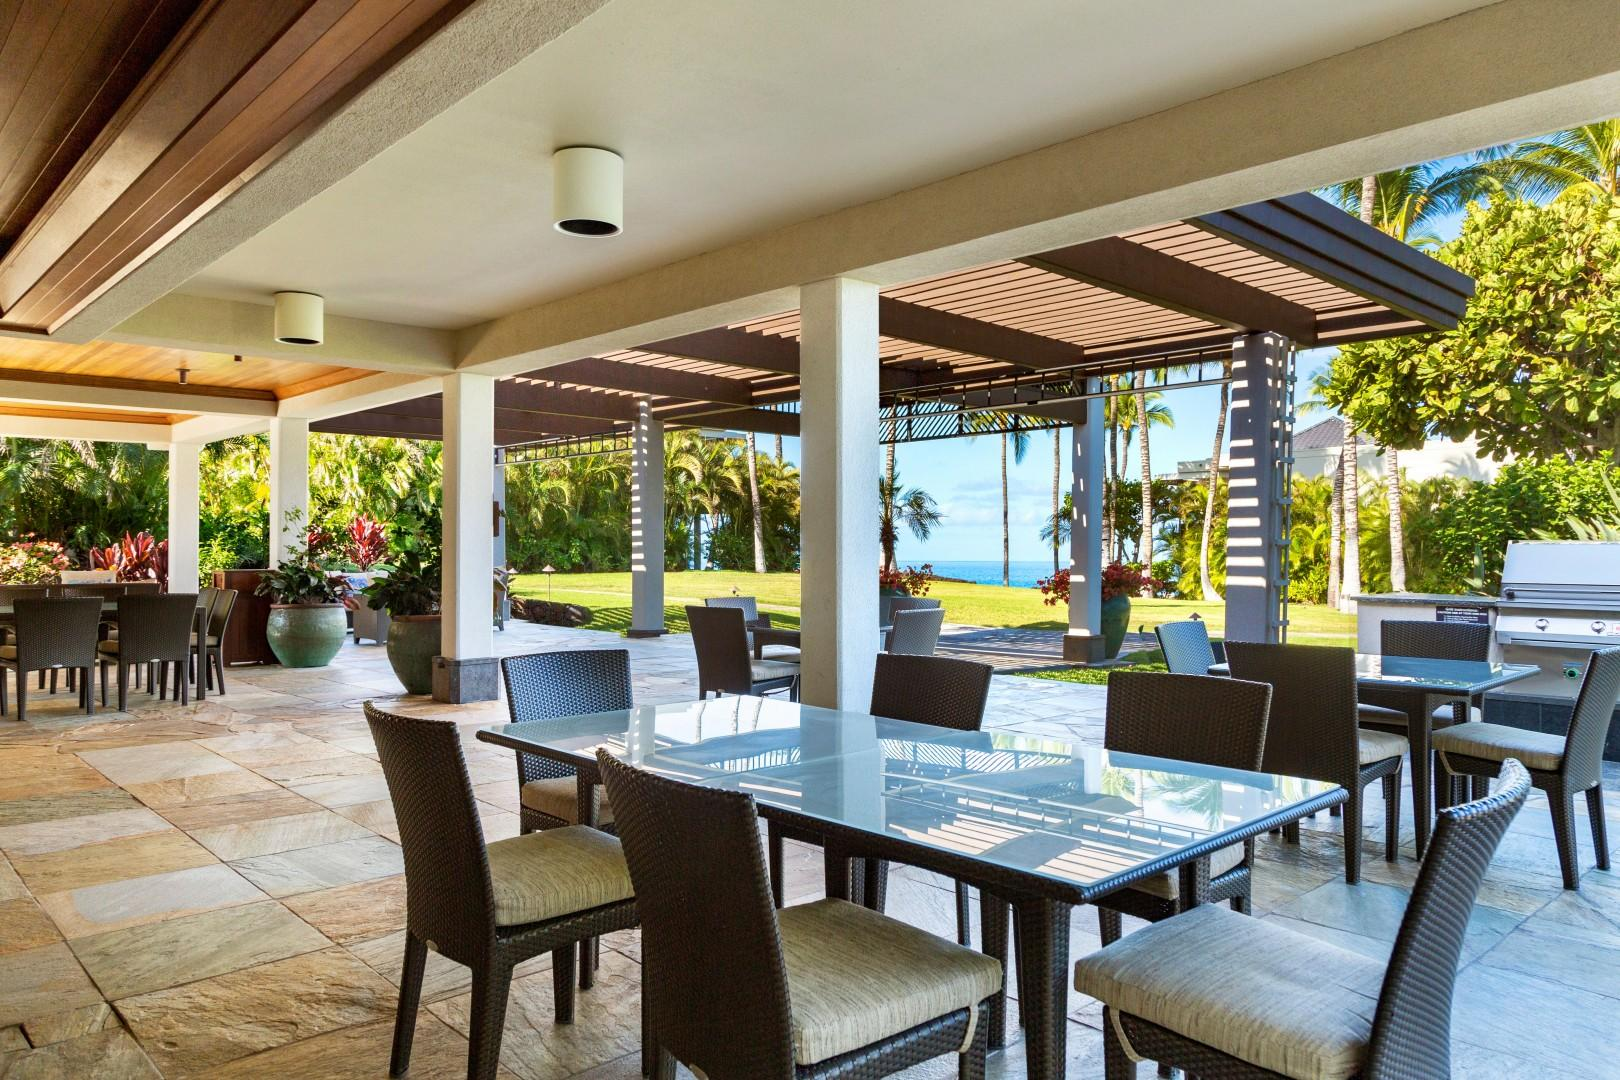 Plenty of seating at the clubhouse and beautiful views.